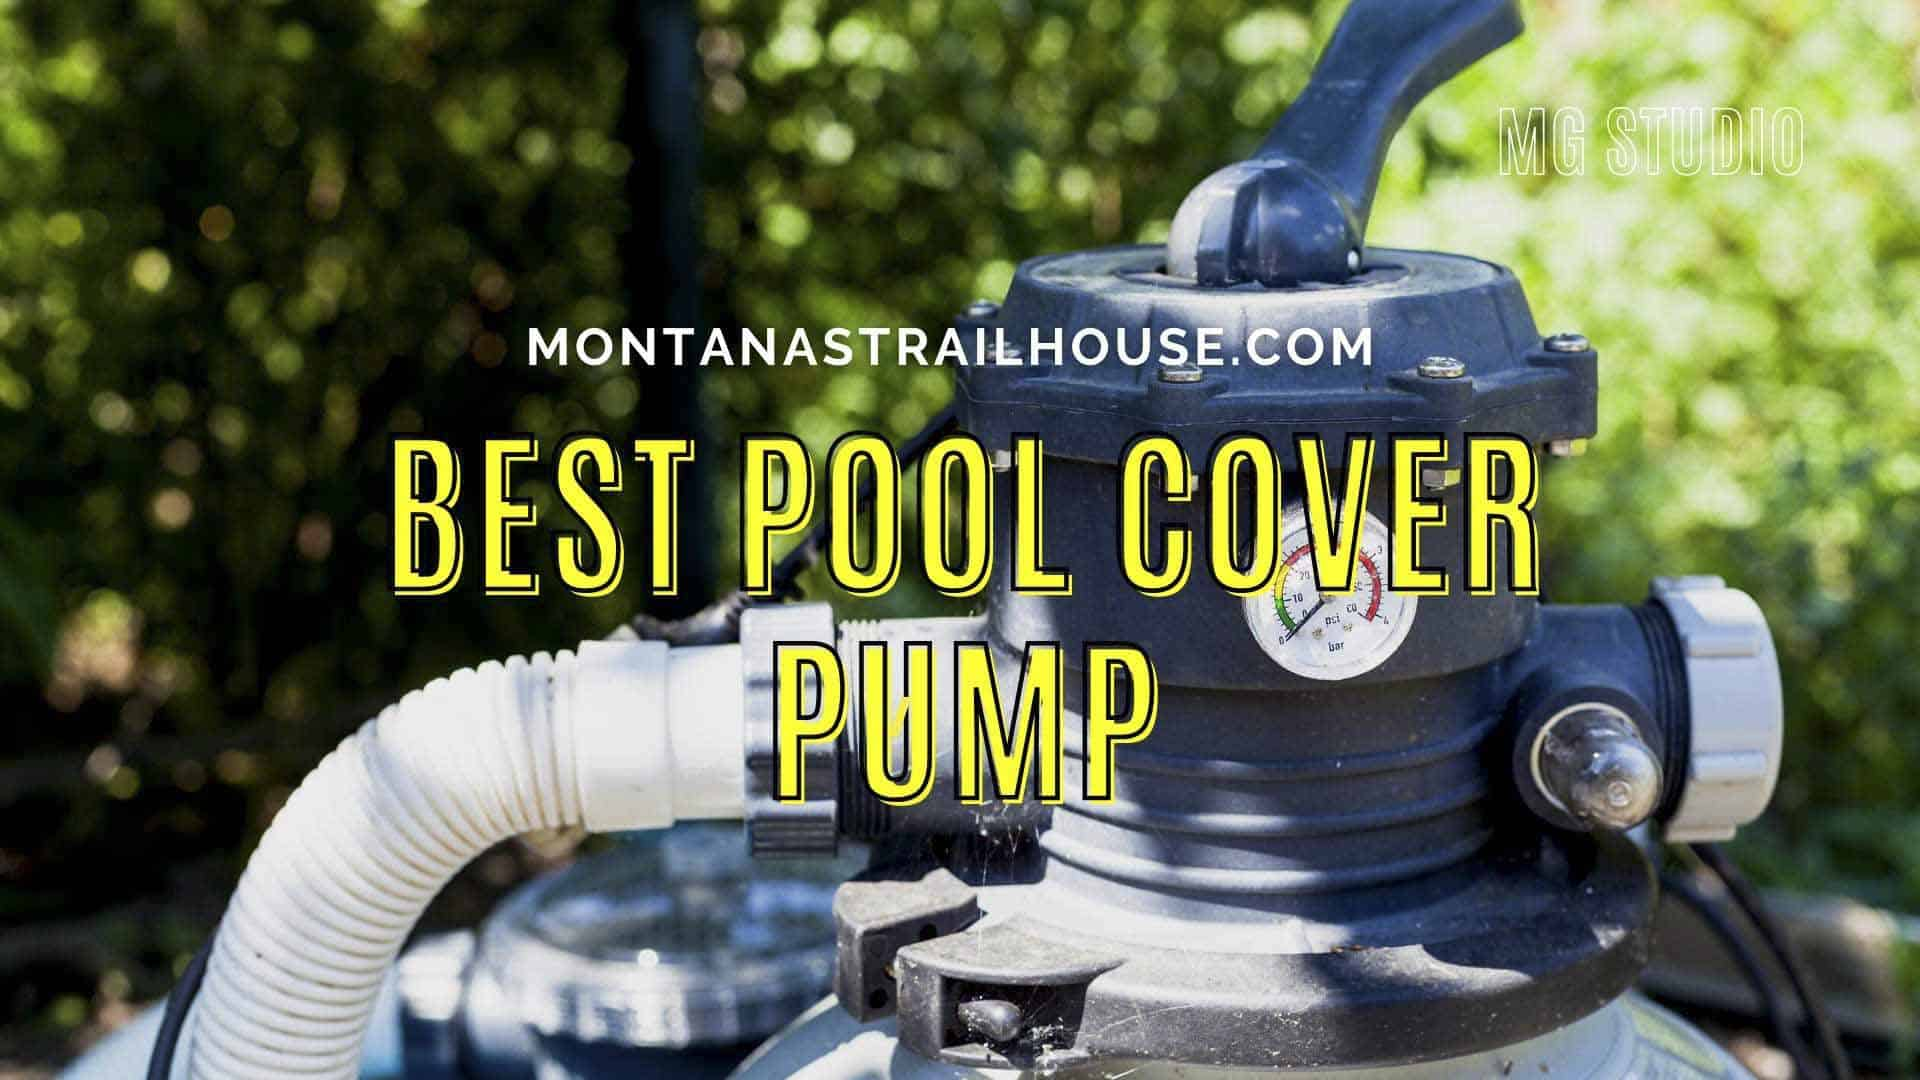 16 Best Pool Cover Pump Reviews in 2021 You Can Buy